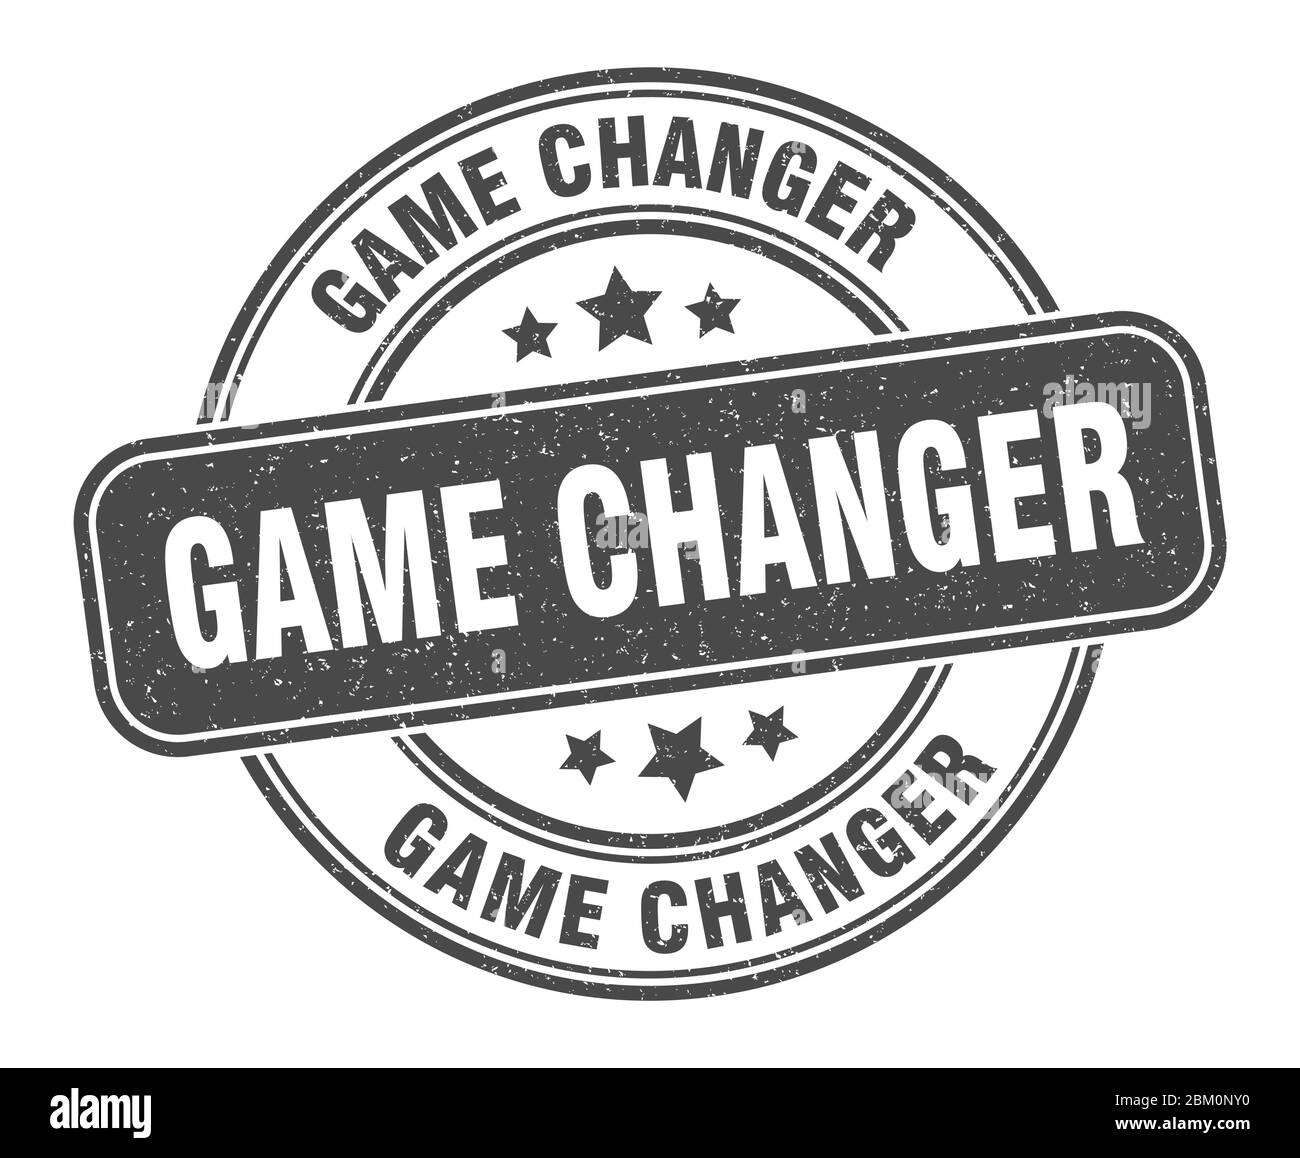 Game Changer Stamp Game Changer Label Round Grunge Sign Stock Vector Image Art Alamy